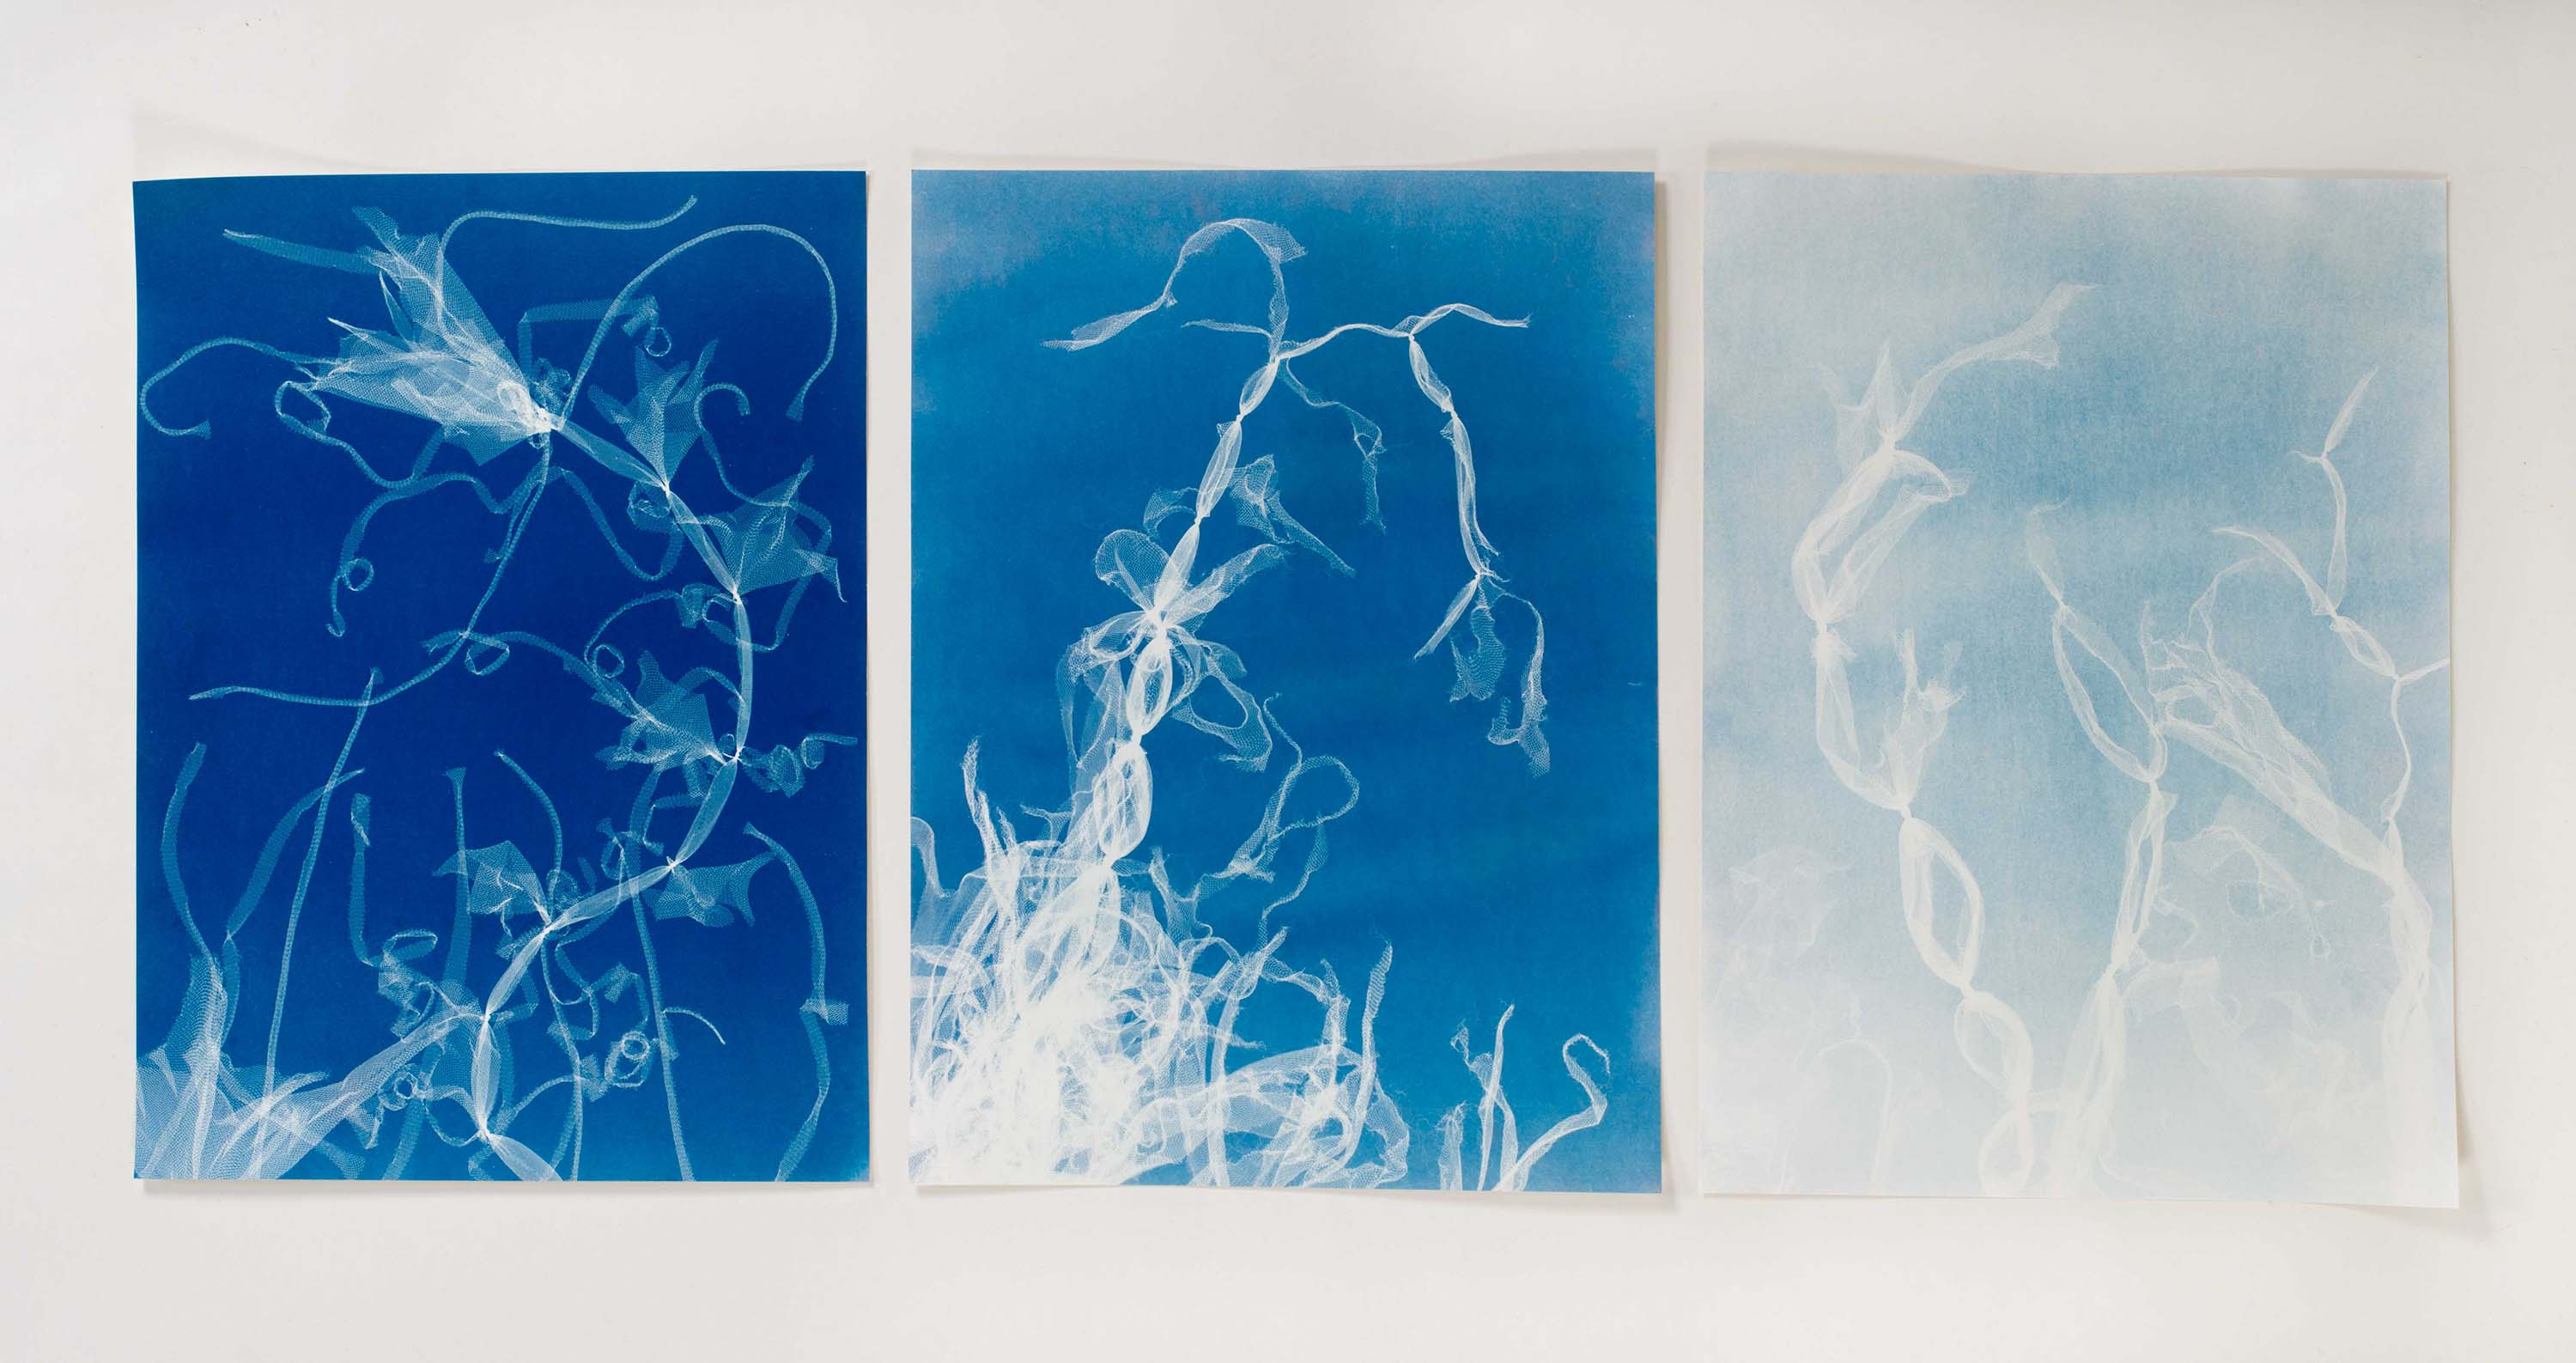 three panes of white wisps against blue backgrounds that get darker from left to right